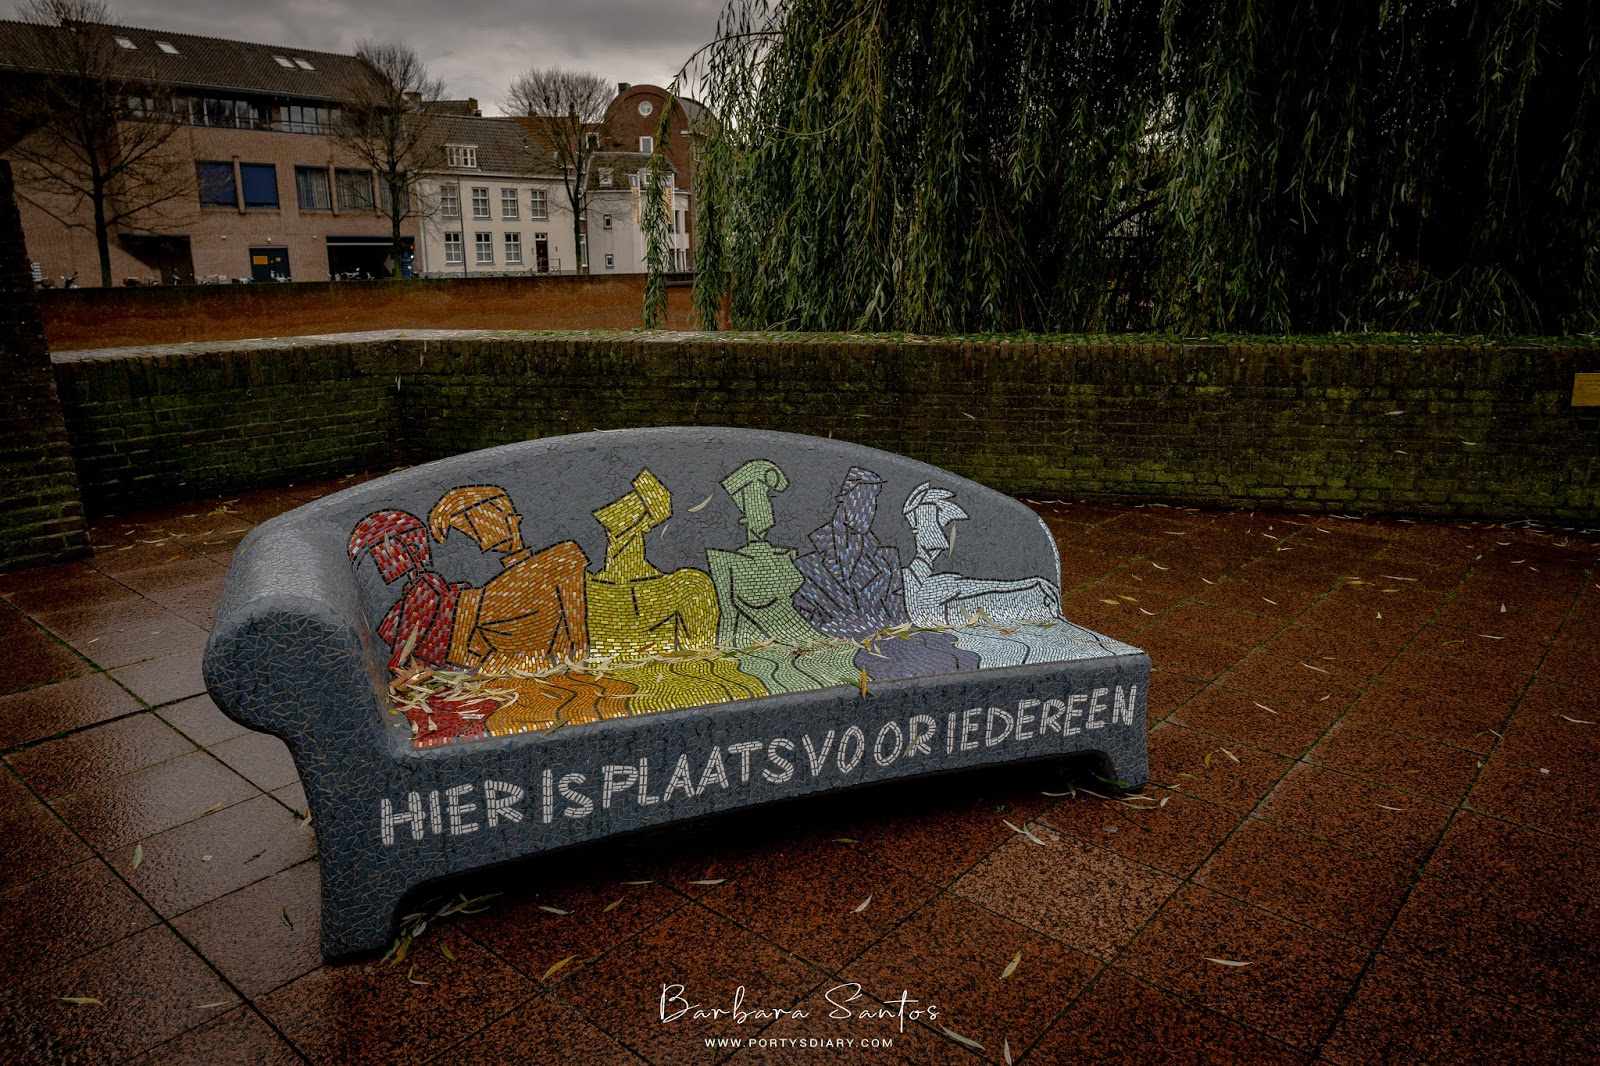 Beautiful Bench, Den Bosch. A weekend in Den Bosch, the Netherlands. A trip diary of how to spend a weekend in this Dutch city.